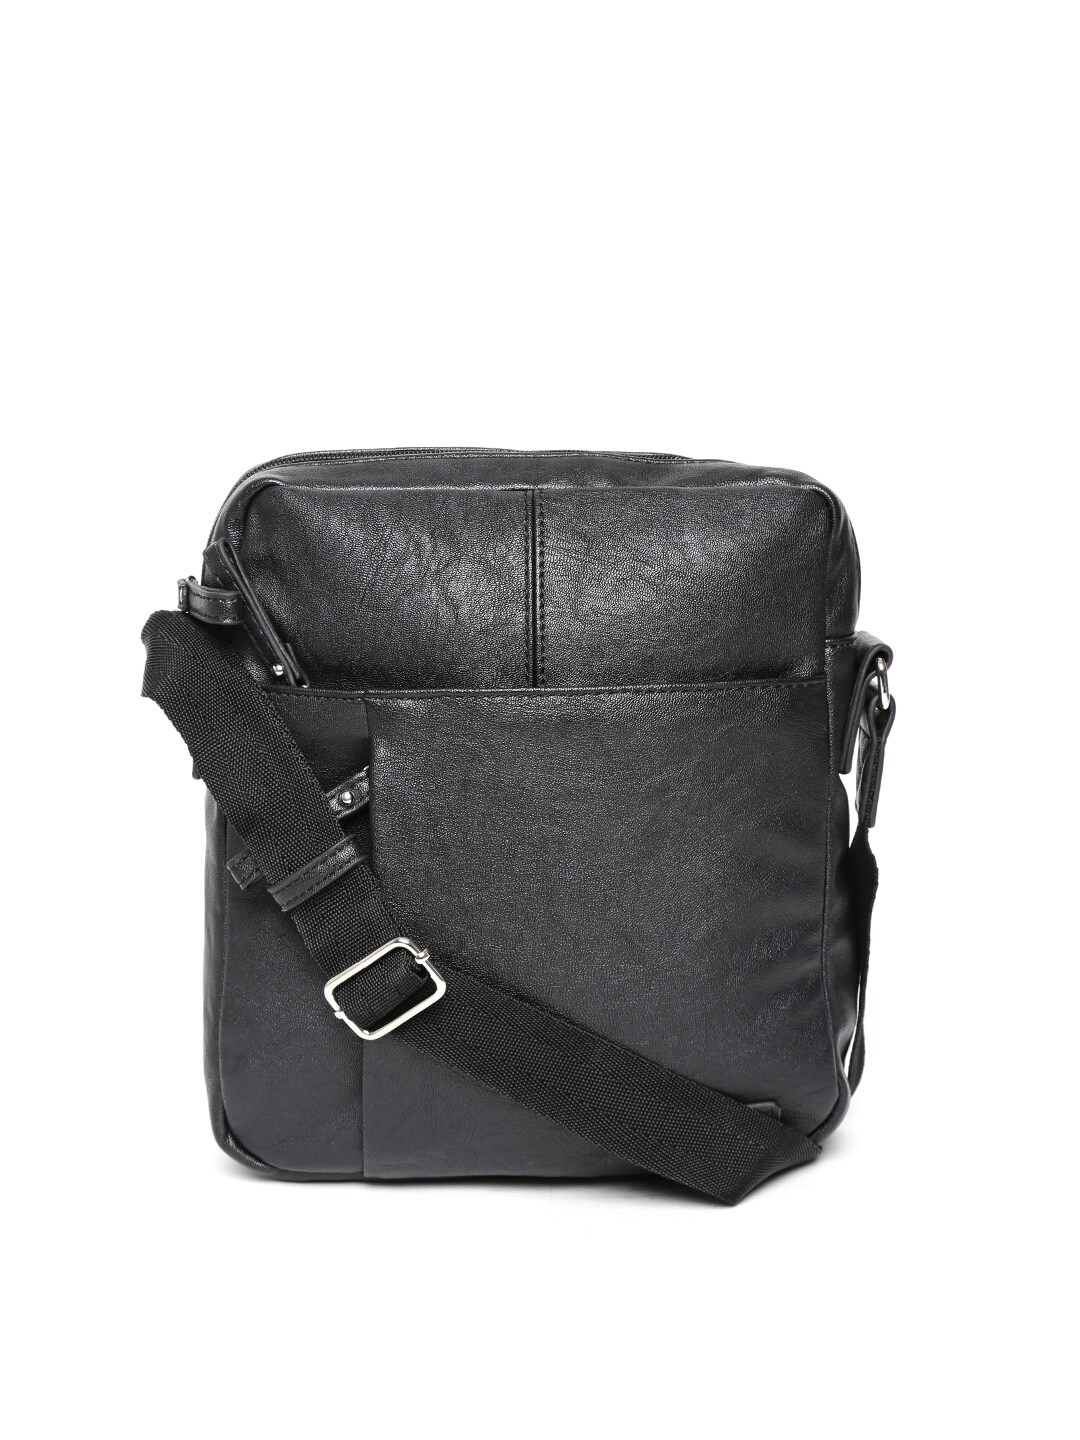 Buy United Colors Of Benetton Men Black Sling Bag - 598 - Accessories ...